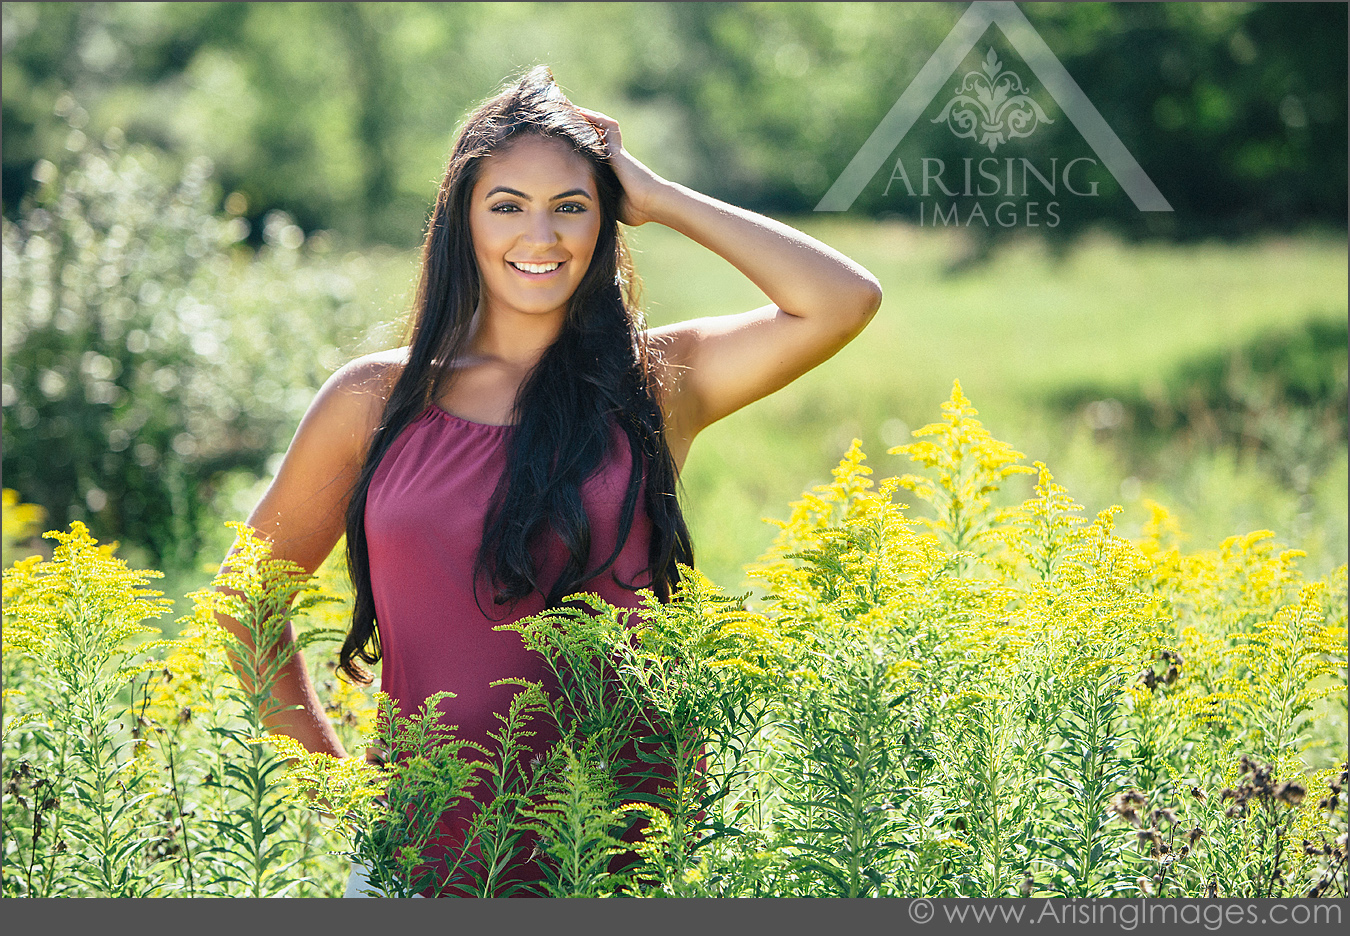 Orion Senior Portraits